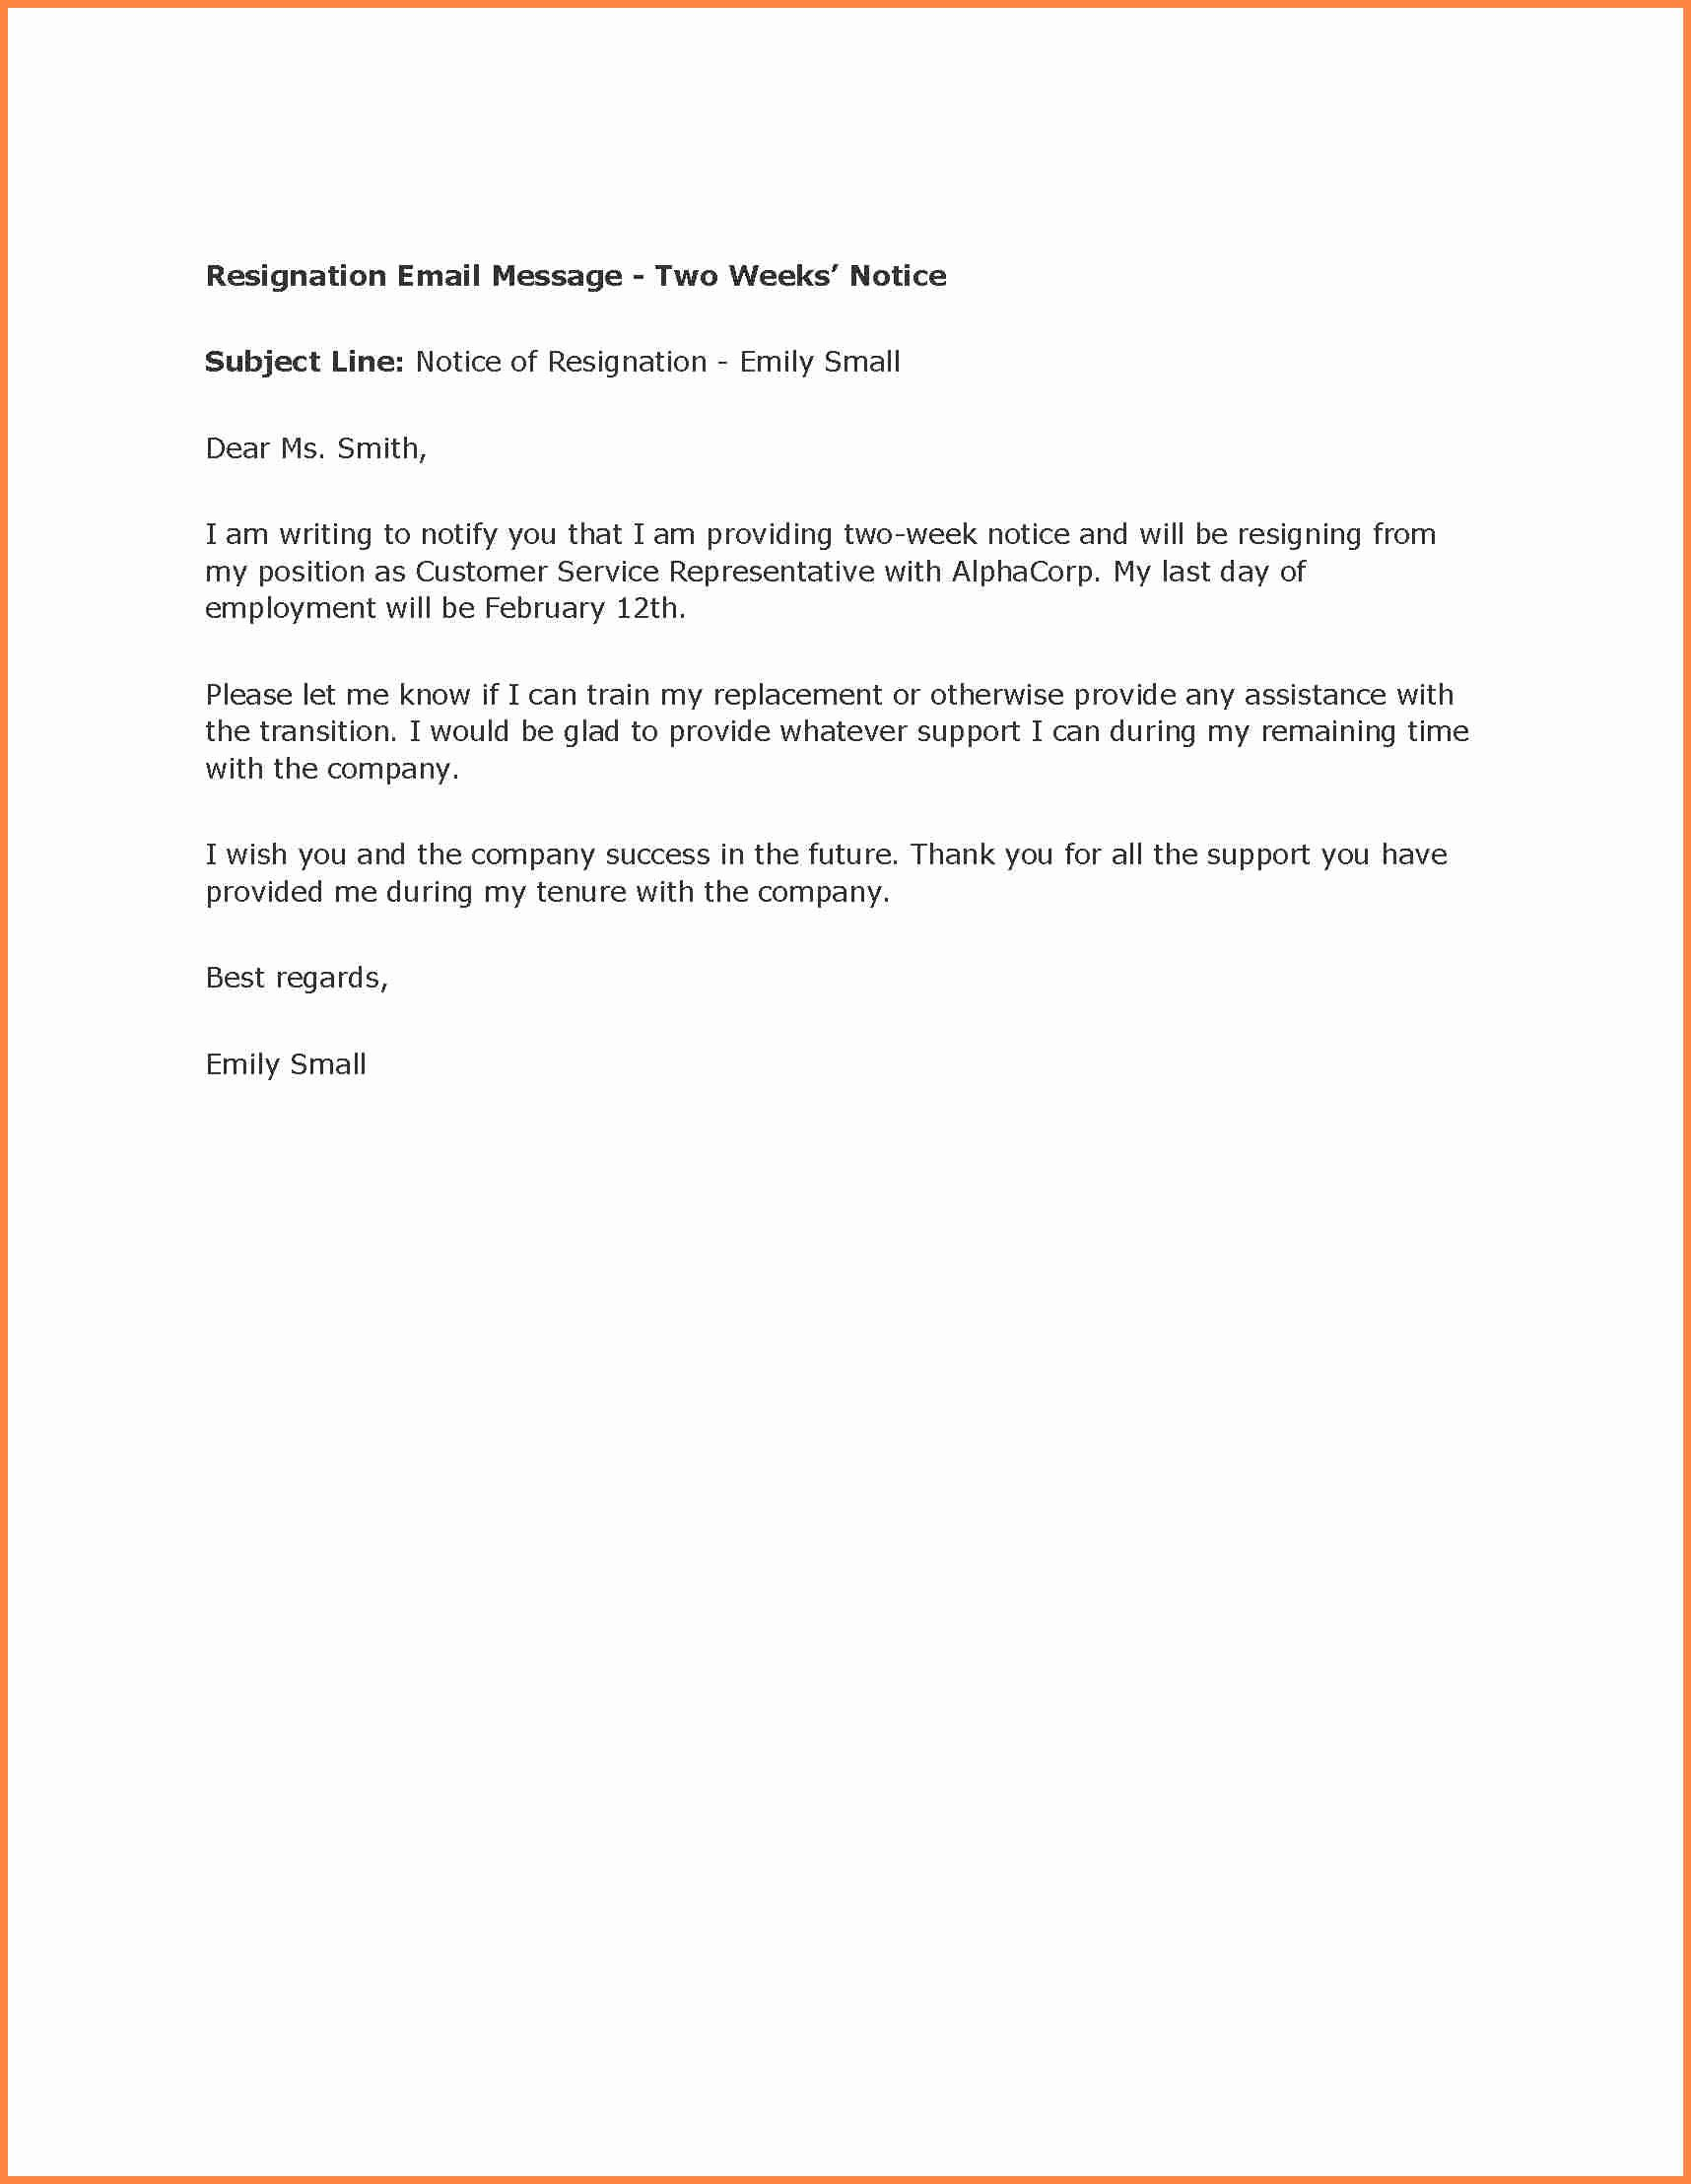 Resignation Letter 2 Week Notice Awesome 8 Example Letter Of Resignation 2 Week Notice